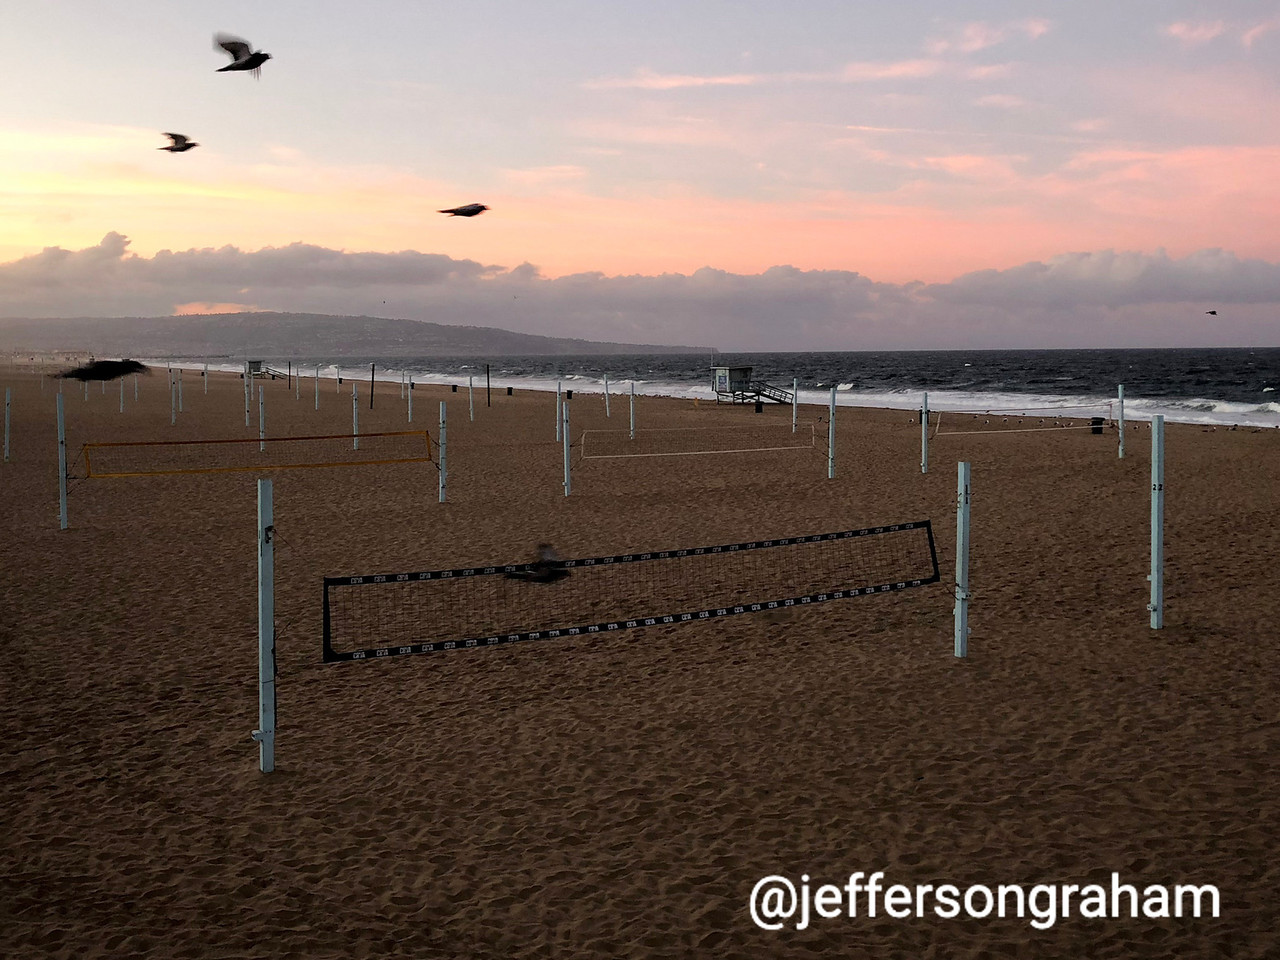 Birds enjoy themselves over an empty volleyball net on a Manhattan Beach morning